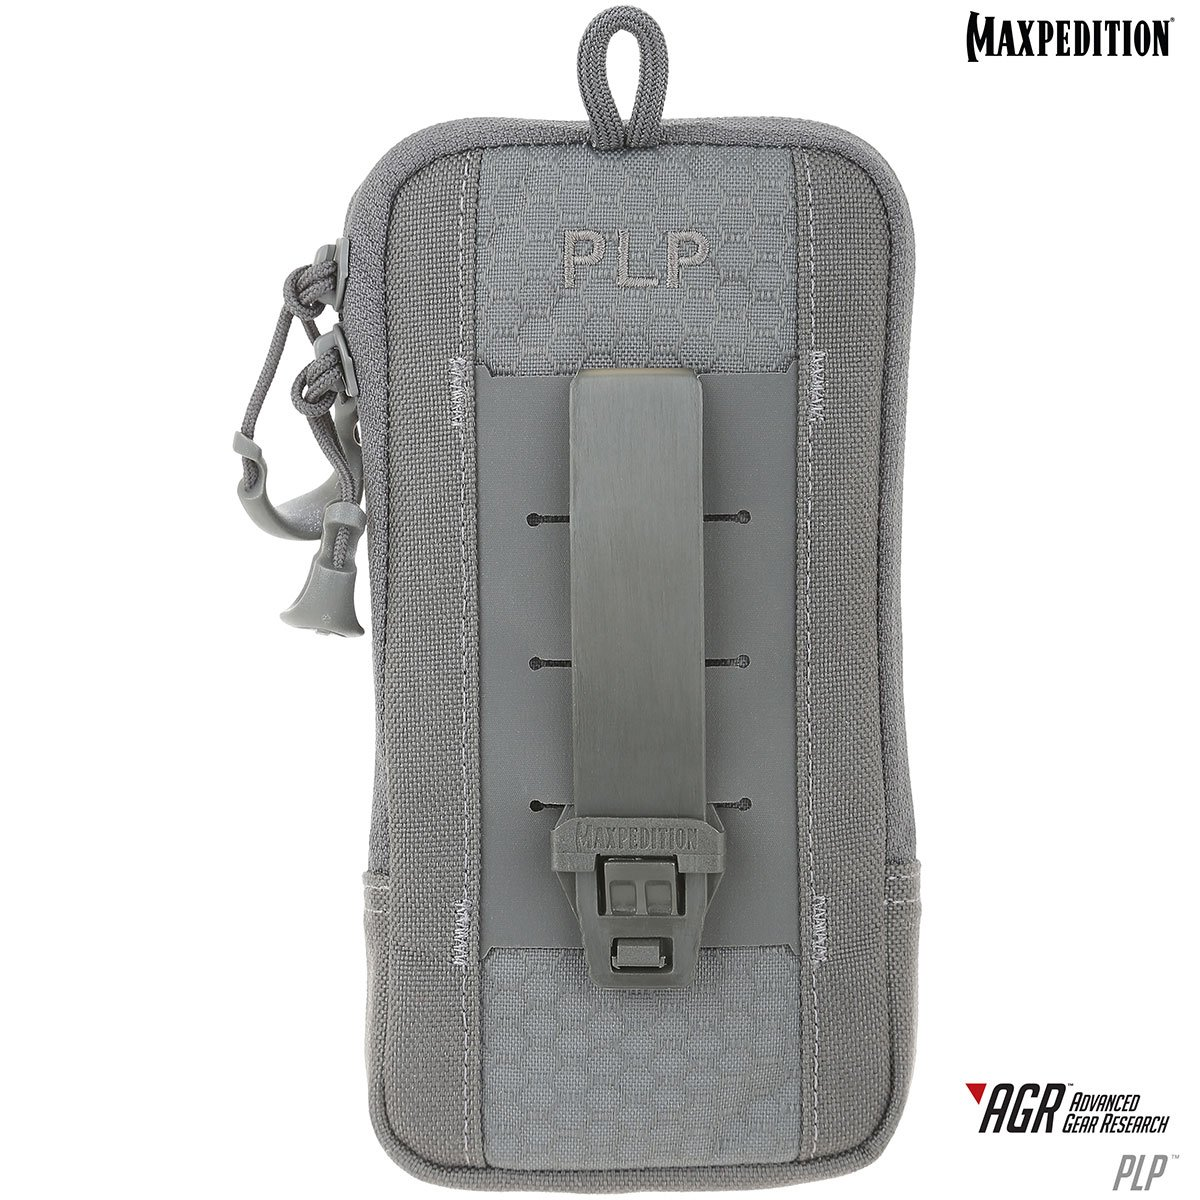 Maxpedition PLP iPhone 7 Plus Pouch – Tan